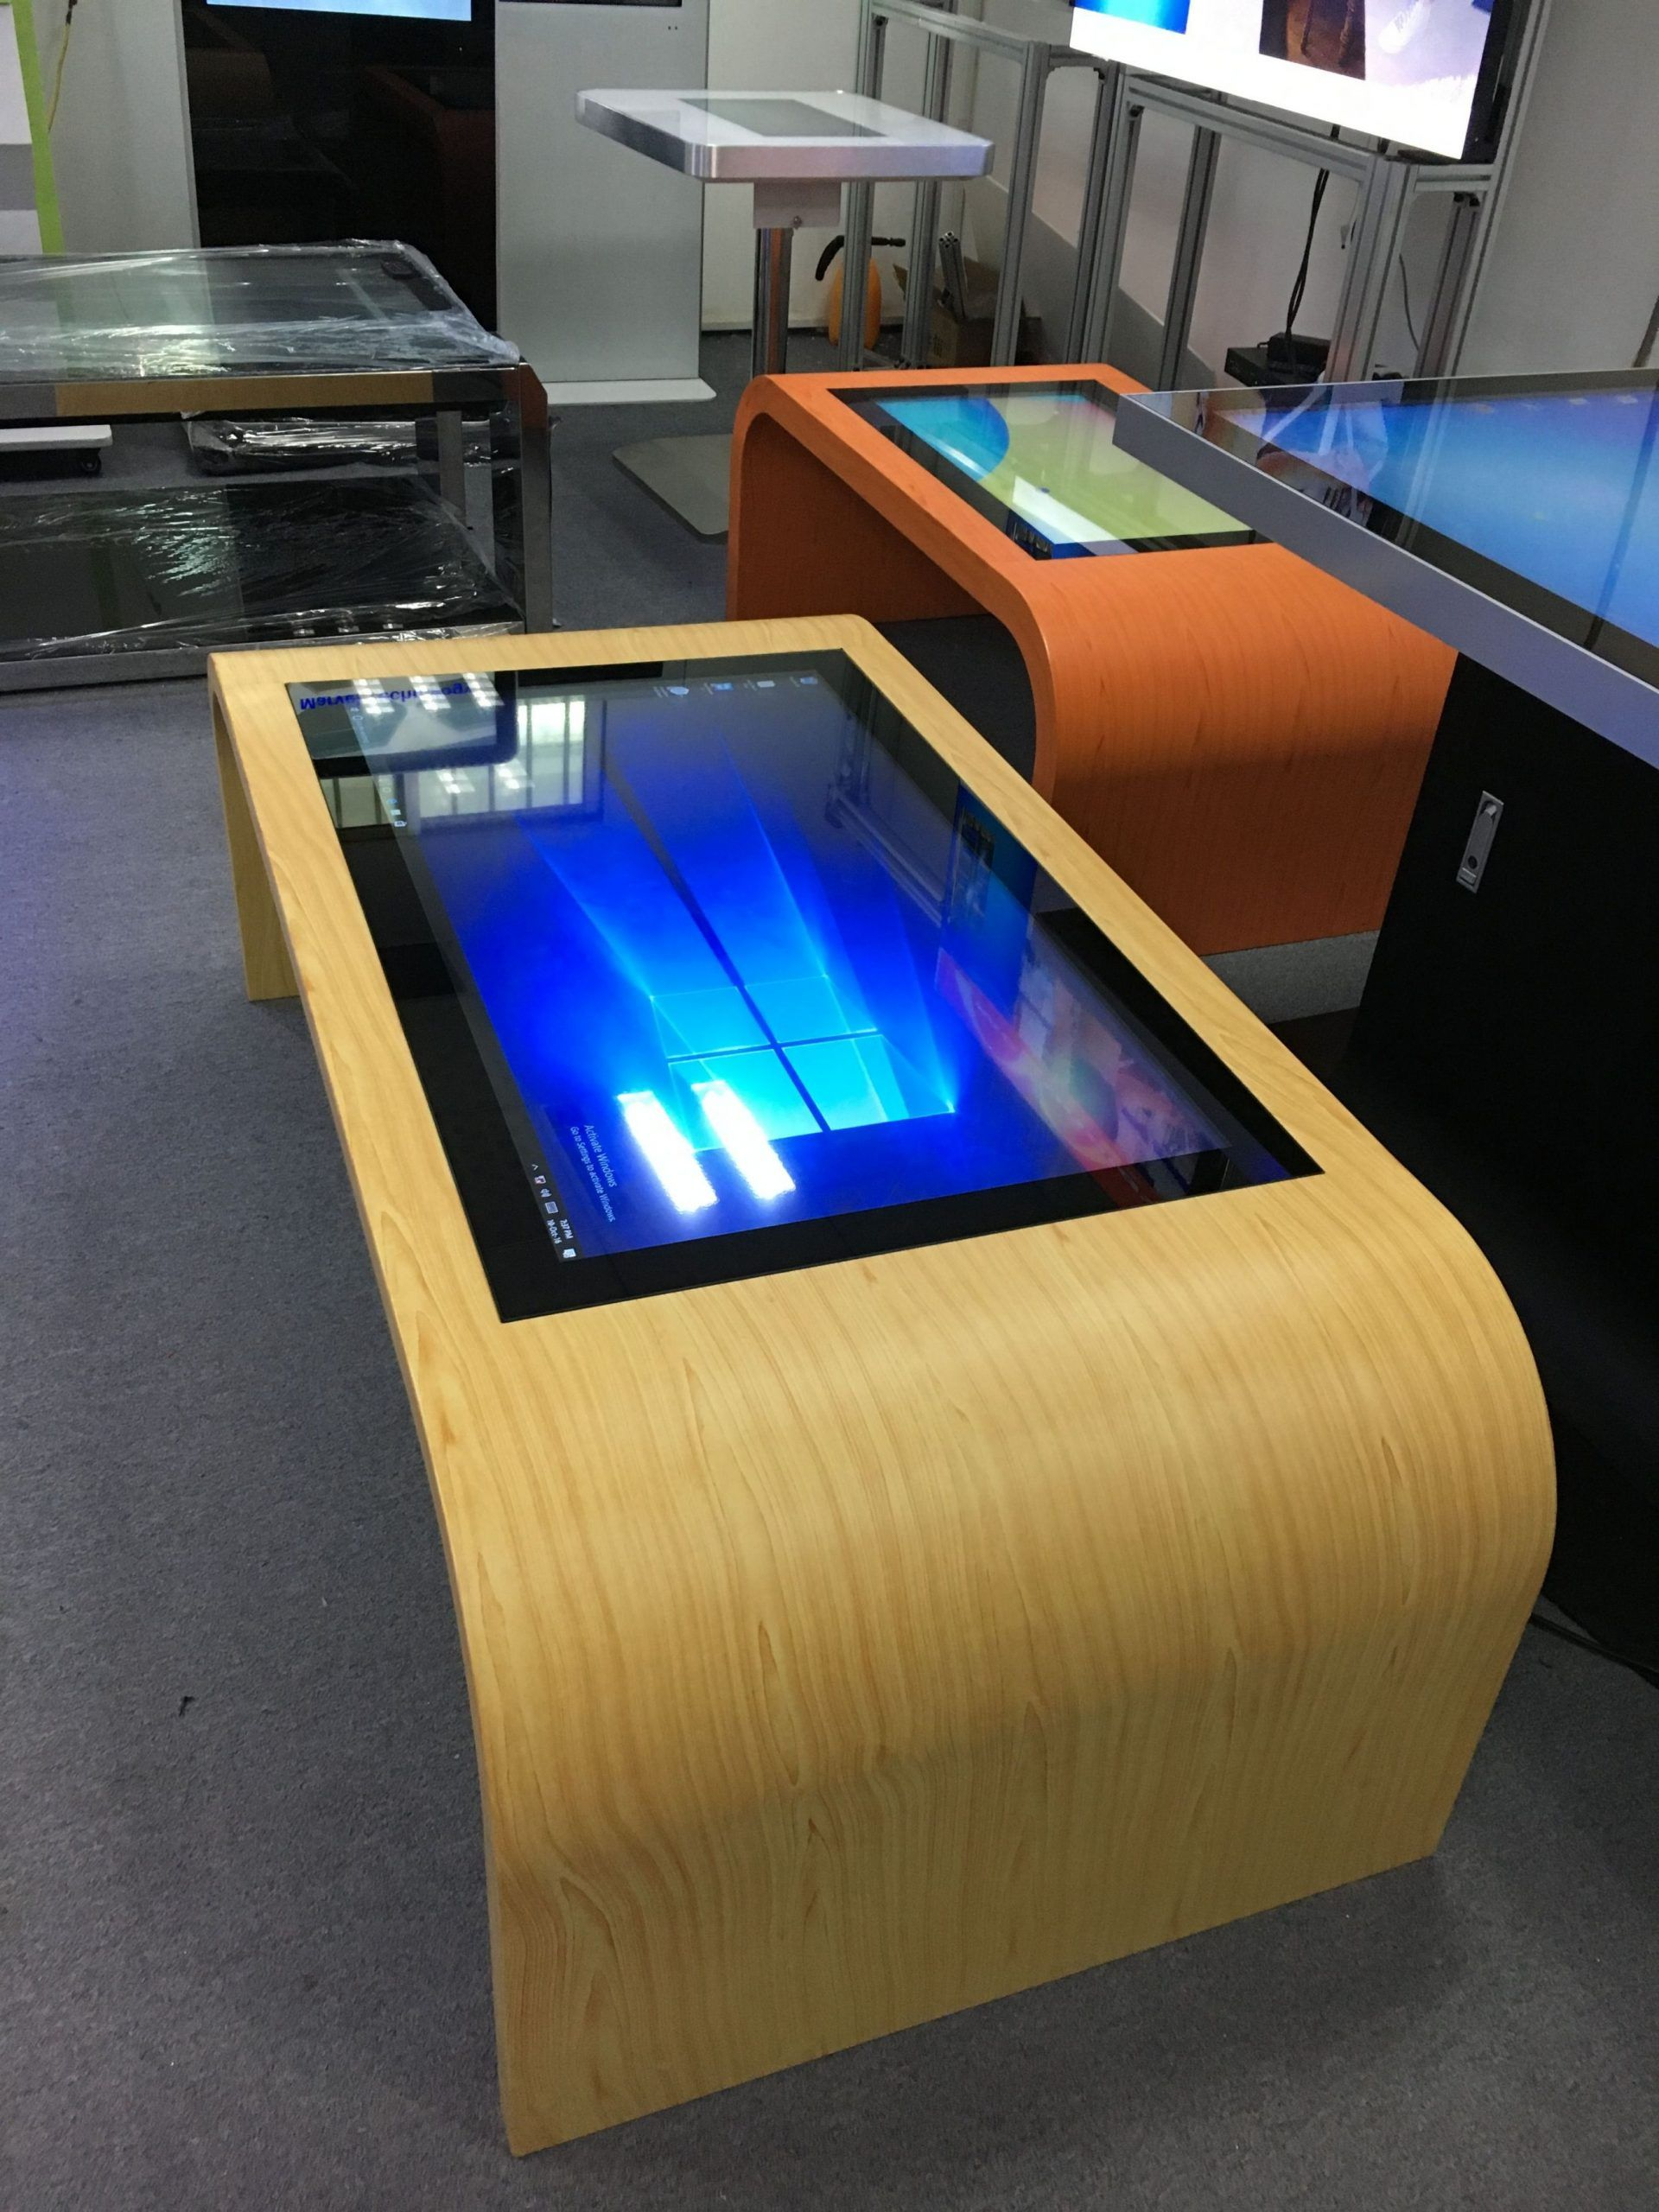 Find Touch Of Modern Coffee Table Fridge To Inspire You Coffee Table Teknologi [ 2560 x 1920 Pixel ]